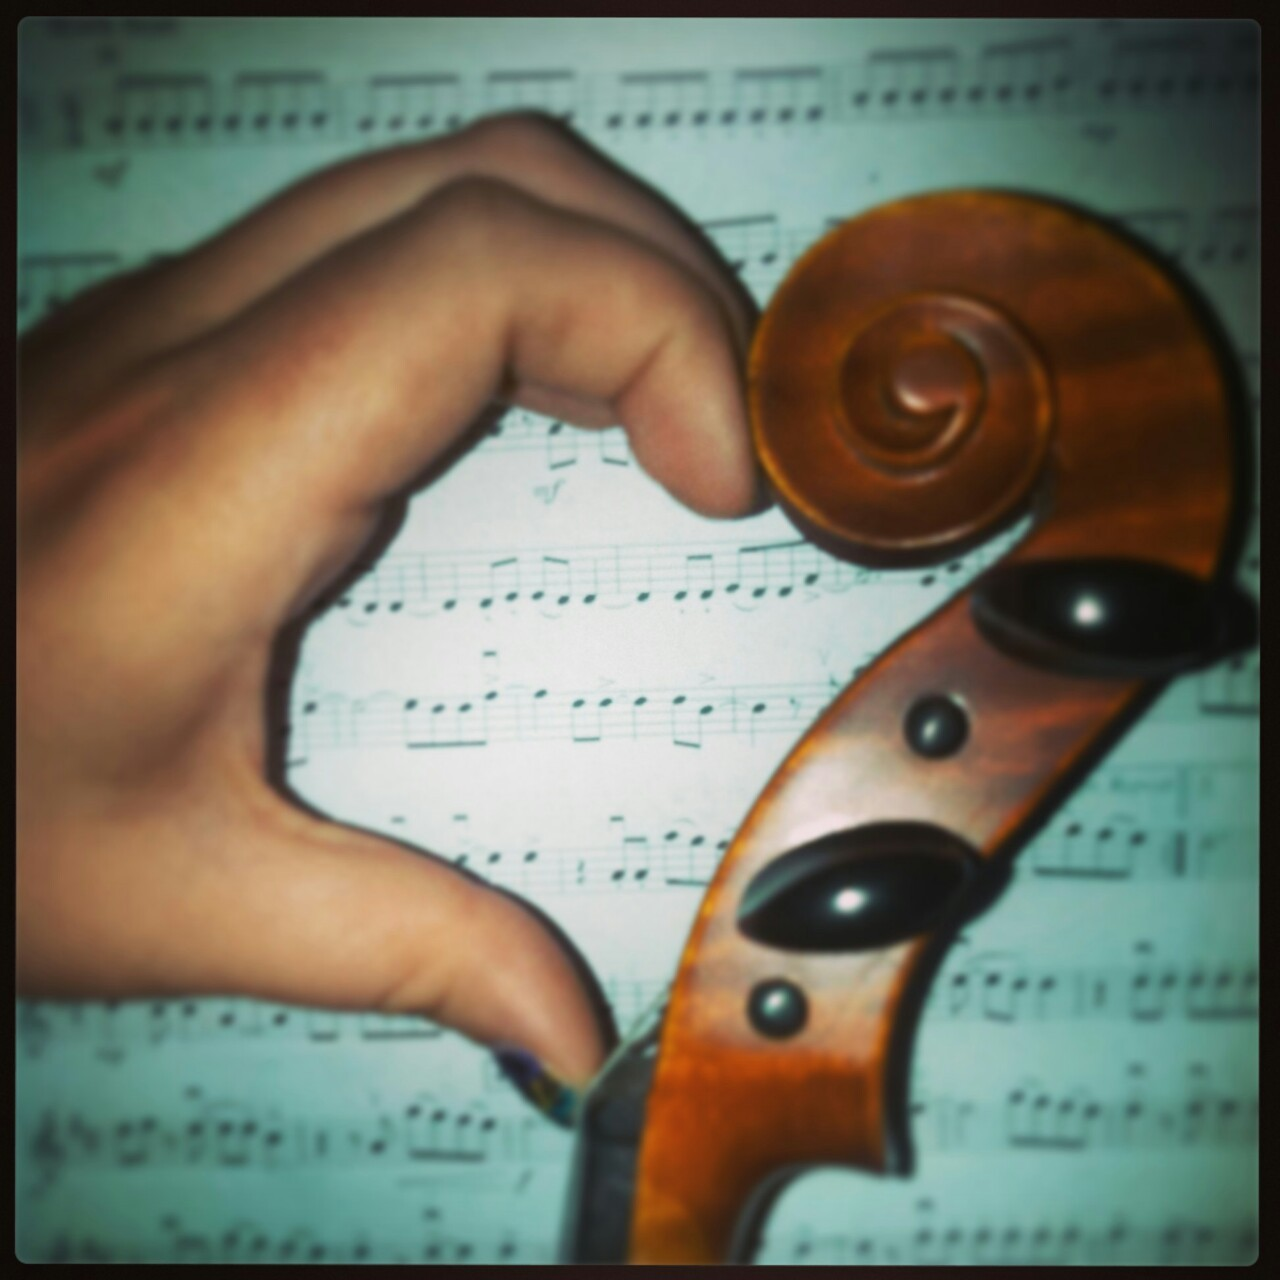 live-laugh-love12-1:  Violin is my life . Nothing else matters when I play :)